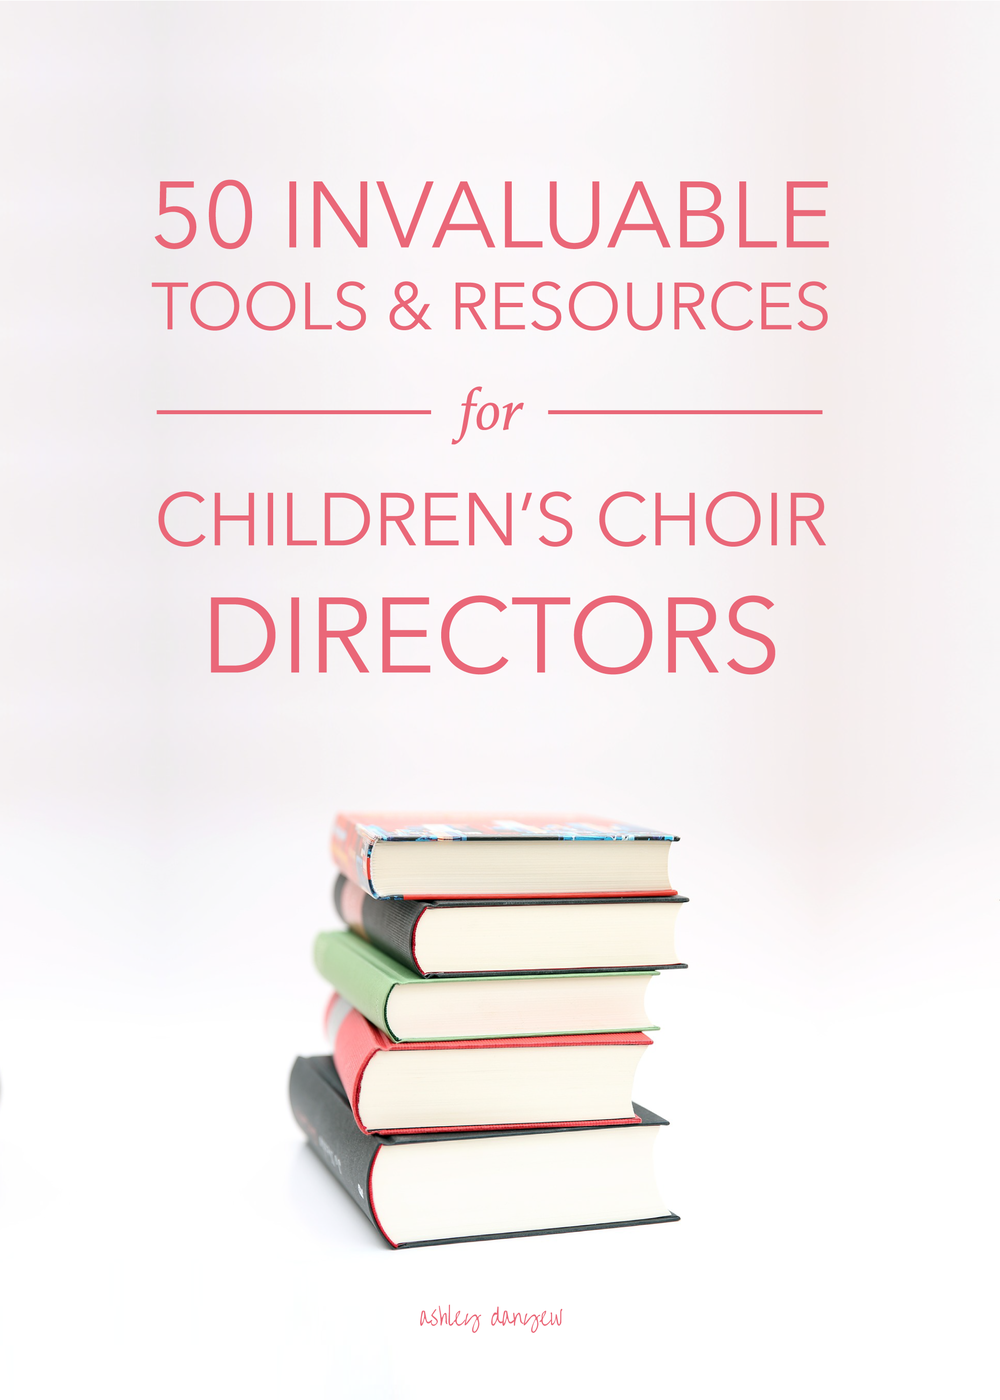 50-Invaluable-Tools-and-Resources-for-Childrens-Choir-Directors-01.png